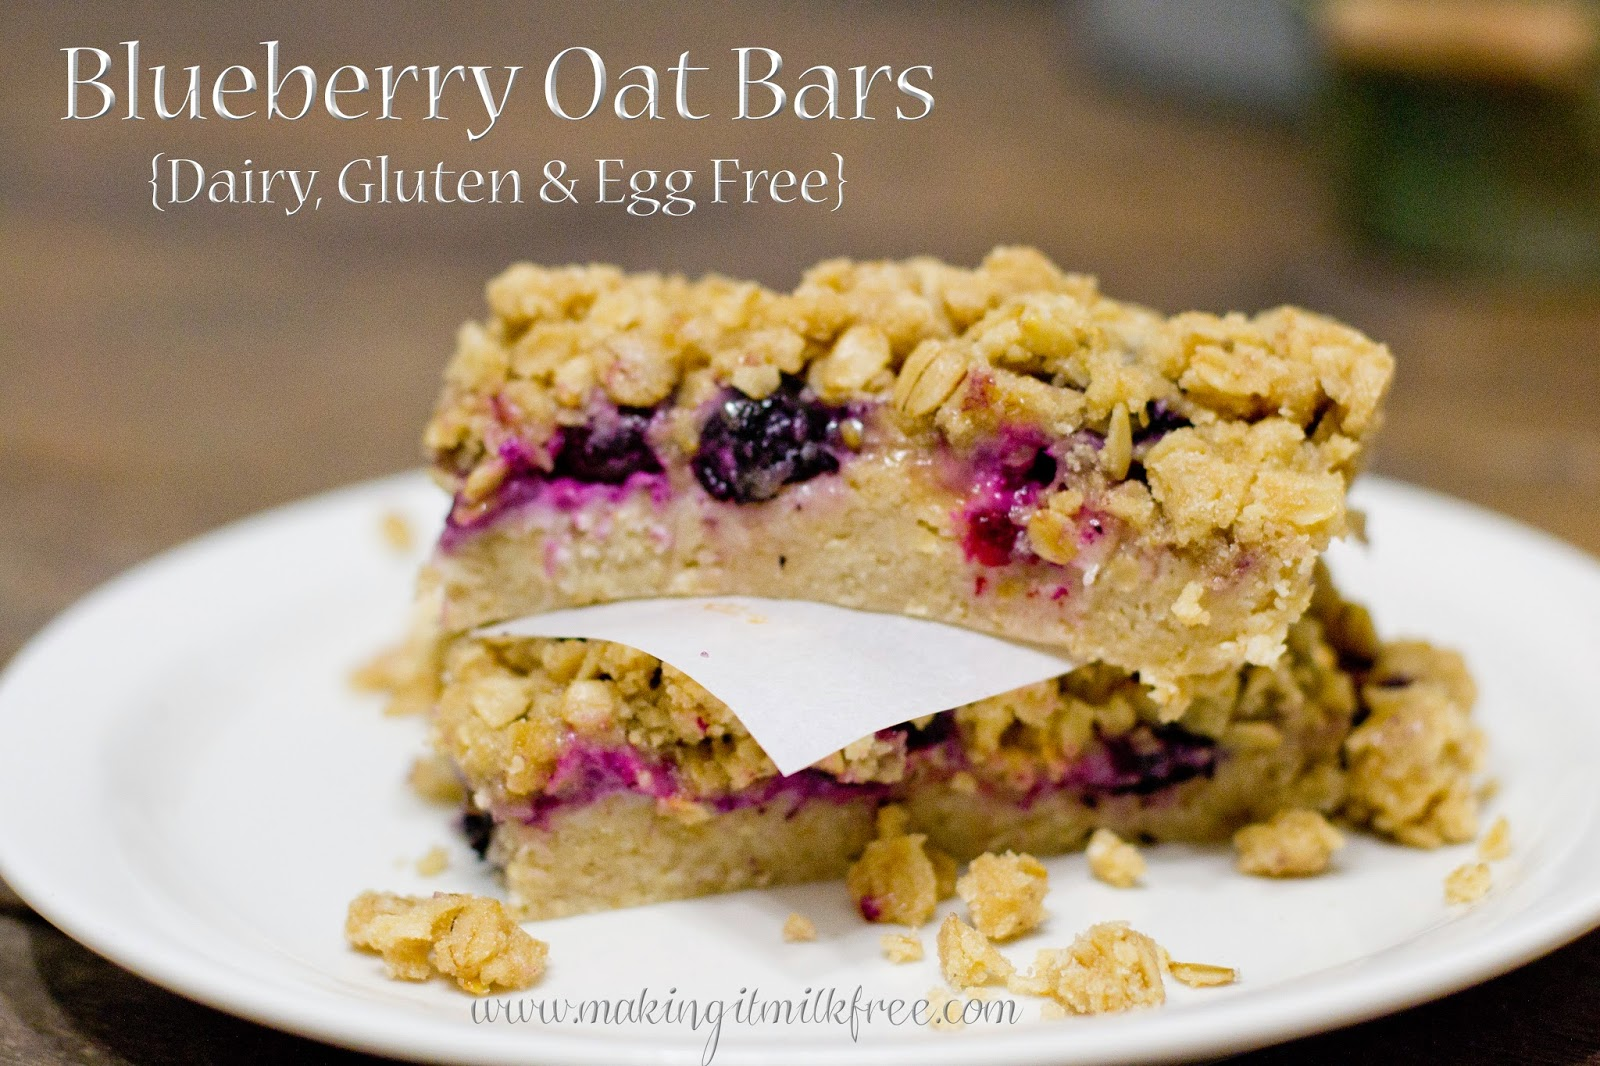 #glutenfree #breakfast #recipes #dairyfree #eggfree #allergyfriendly